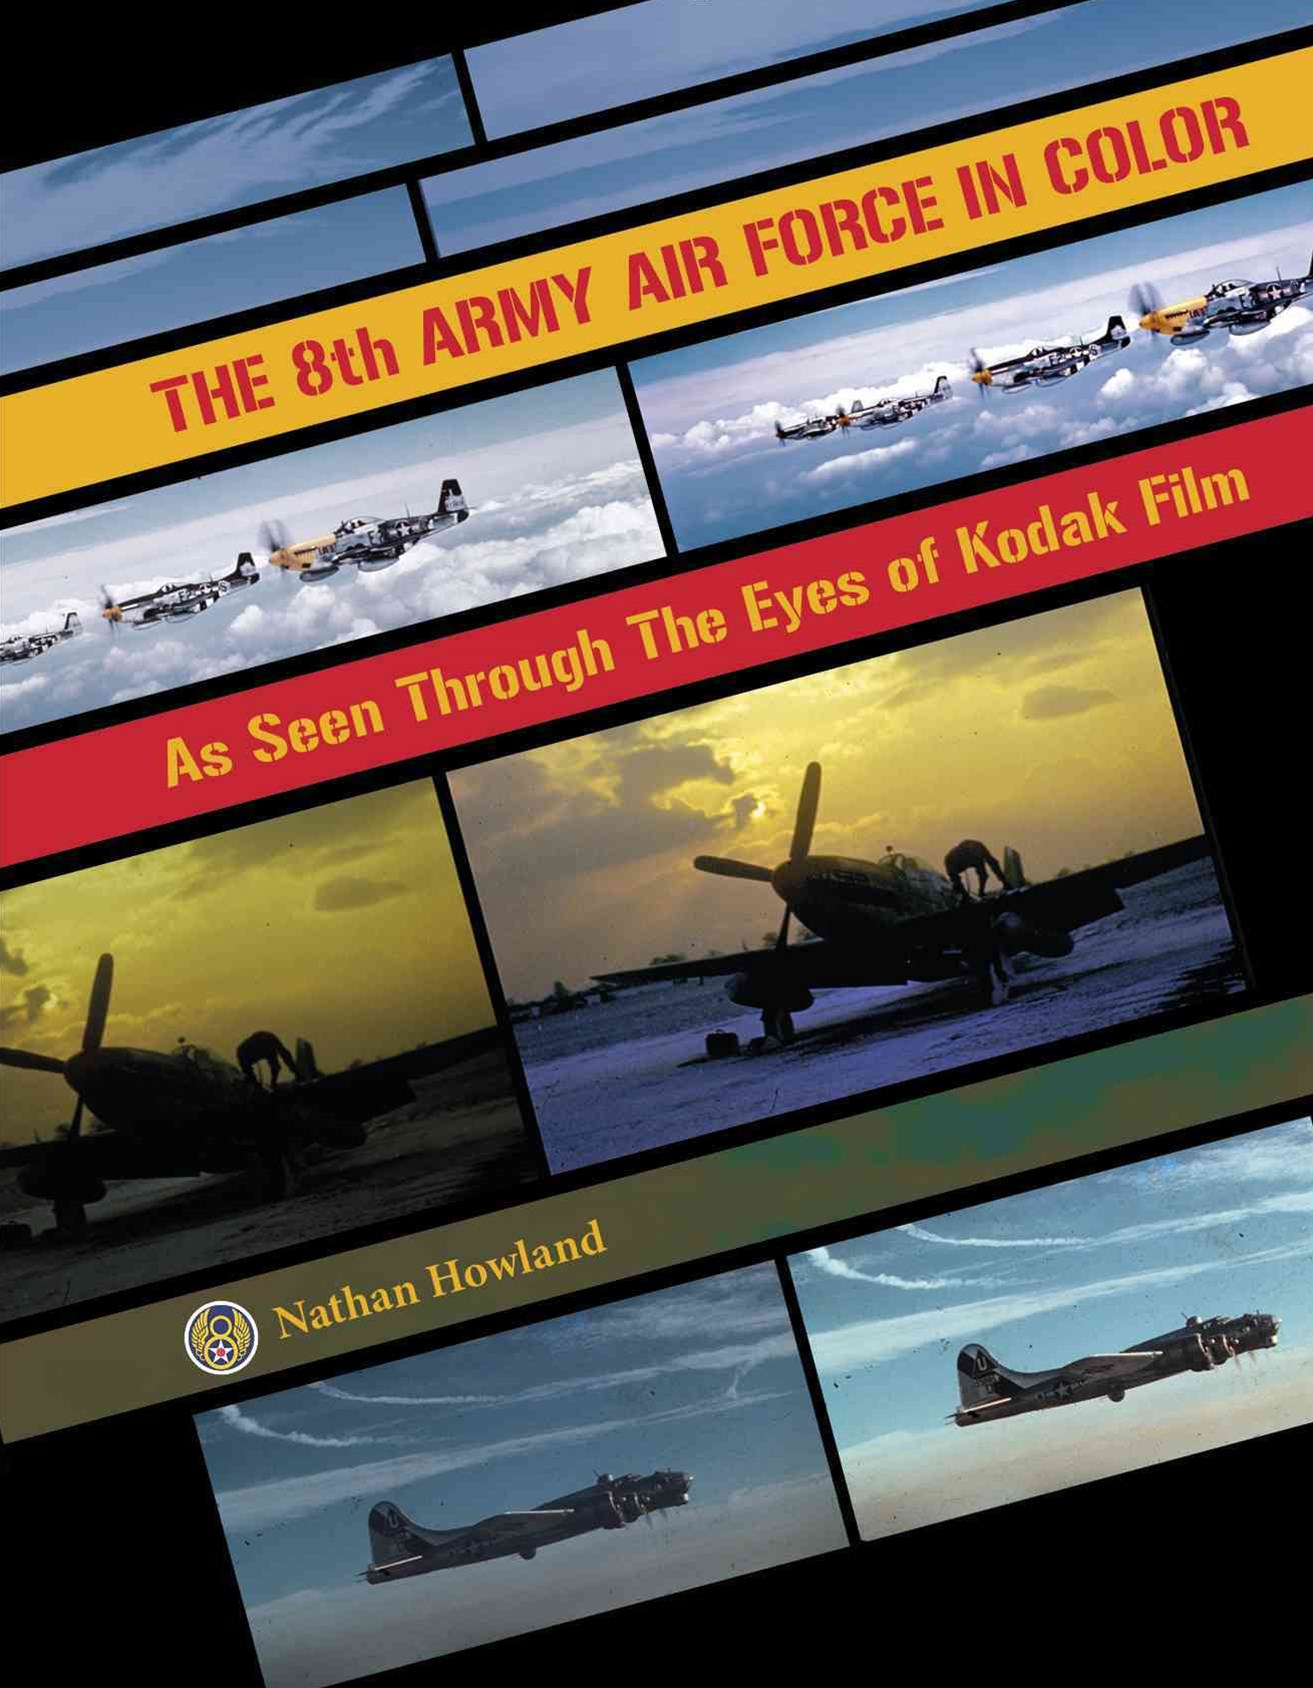 8th Army Air Force in Color: As Seen Through Eyes of Kodak Film